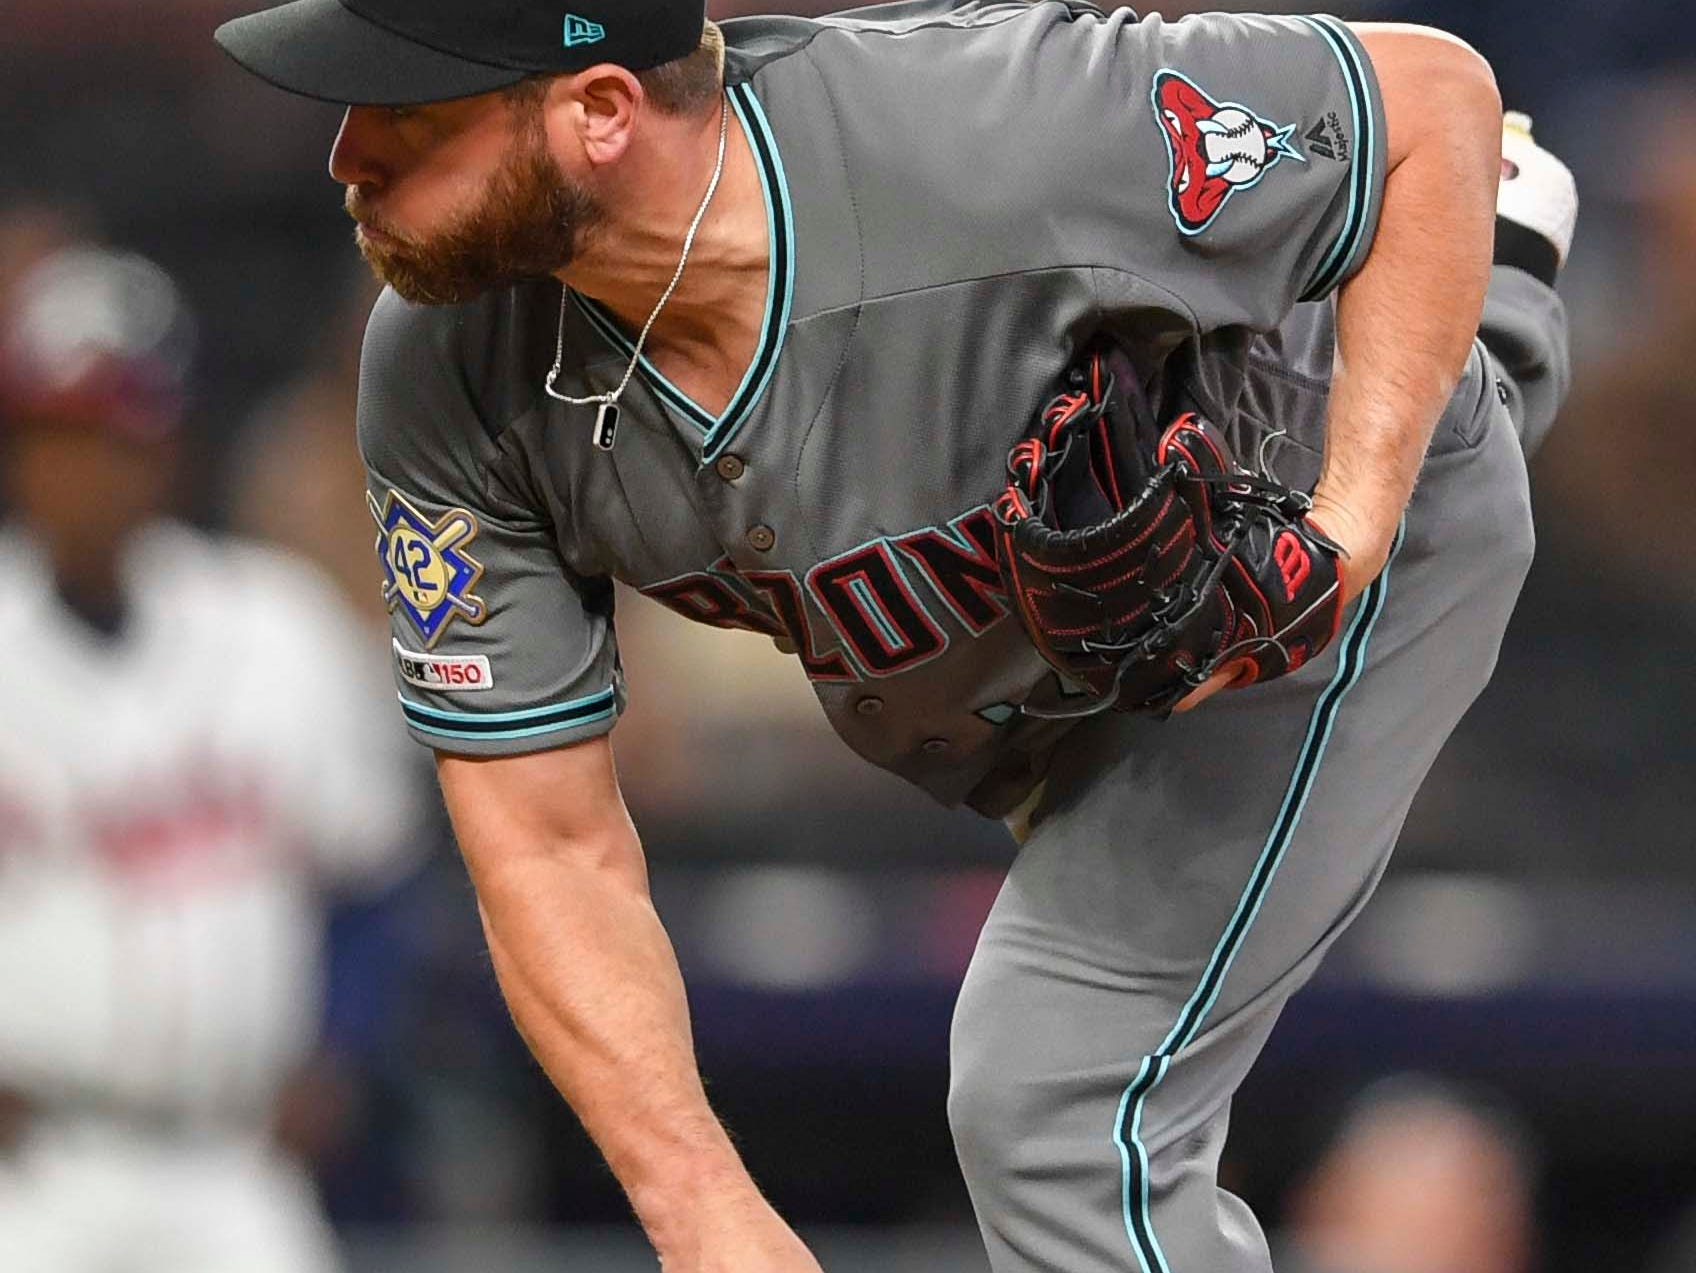 Apr 16, 2019; Atlanta, GA, USA; Arizona Diamondbacks relief pitcher Greg Holland (56) follows through on a pitch against the Atlanta Braves during the ninth inning at SunTrust Park. Mandatory Credit: Dale Zanine-USA TODAY Sports